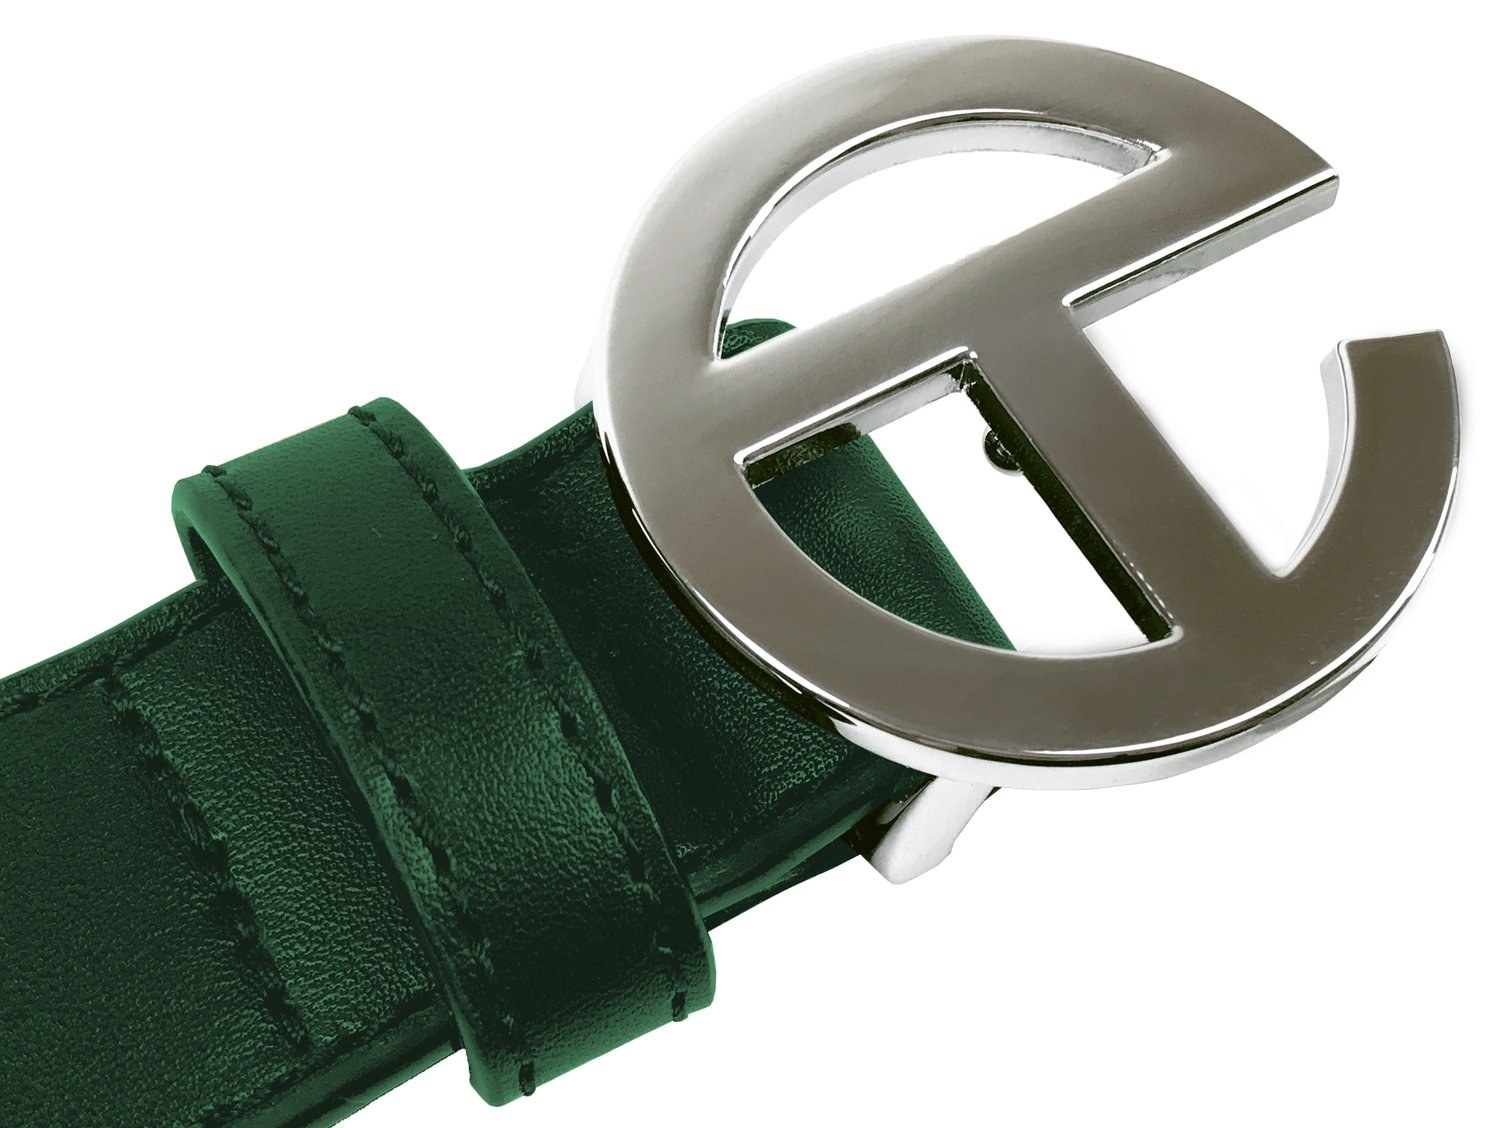 The green leather belt with silver logo buckle